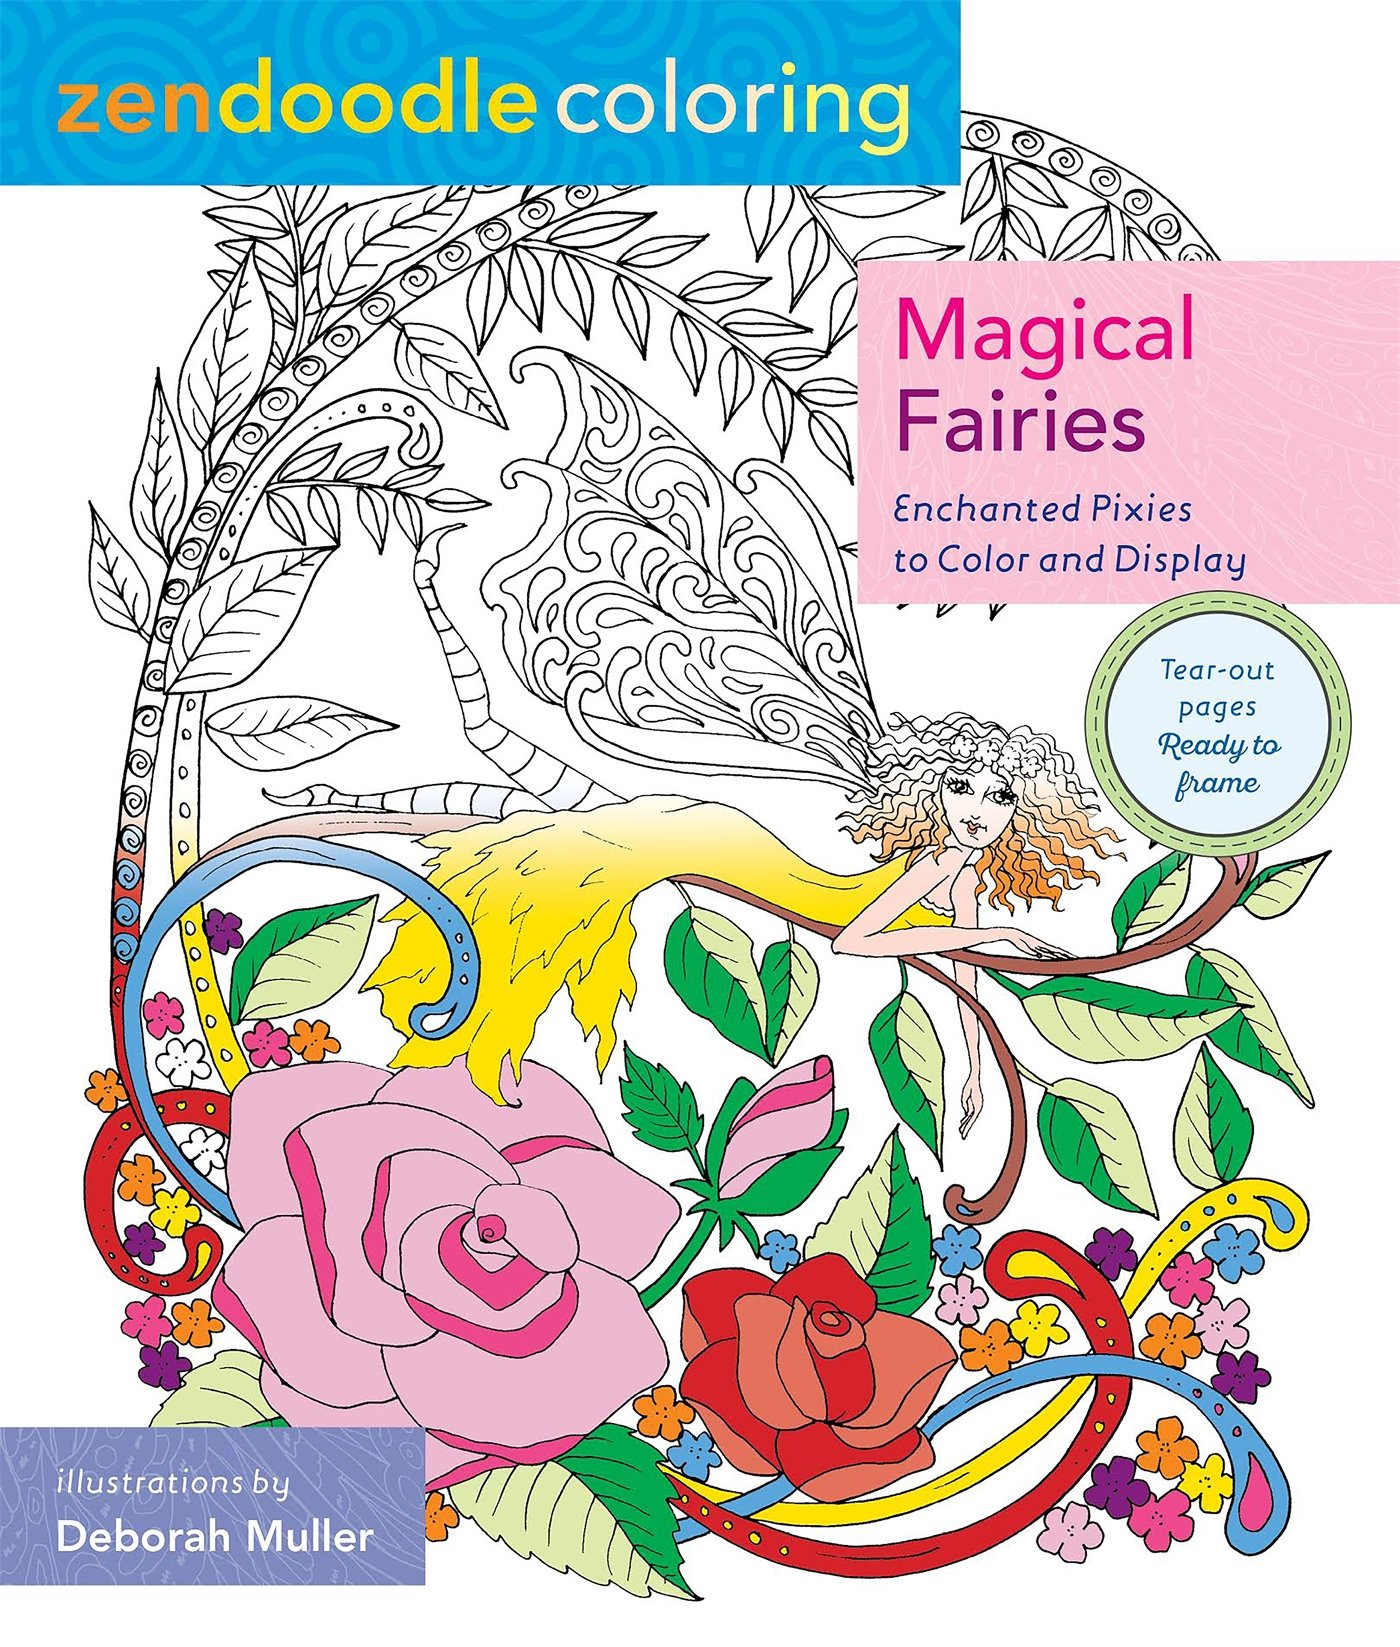 Zendoodle coloring enchanting gardens - Amazon Com Zendoodle Coloring Magical Fairies Enchanted Pixies To Color And Display 9781250108814 Deborah Muller Books